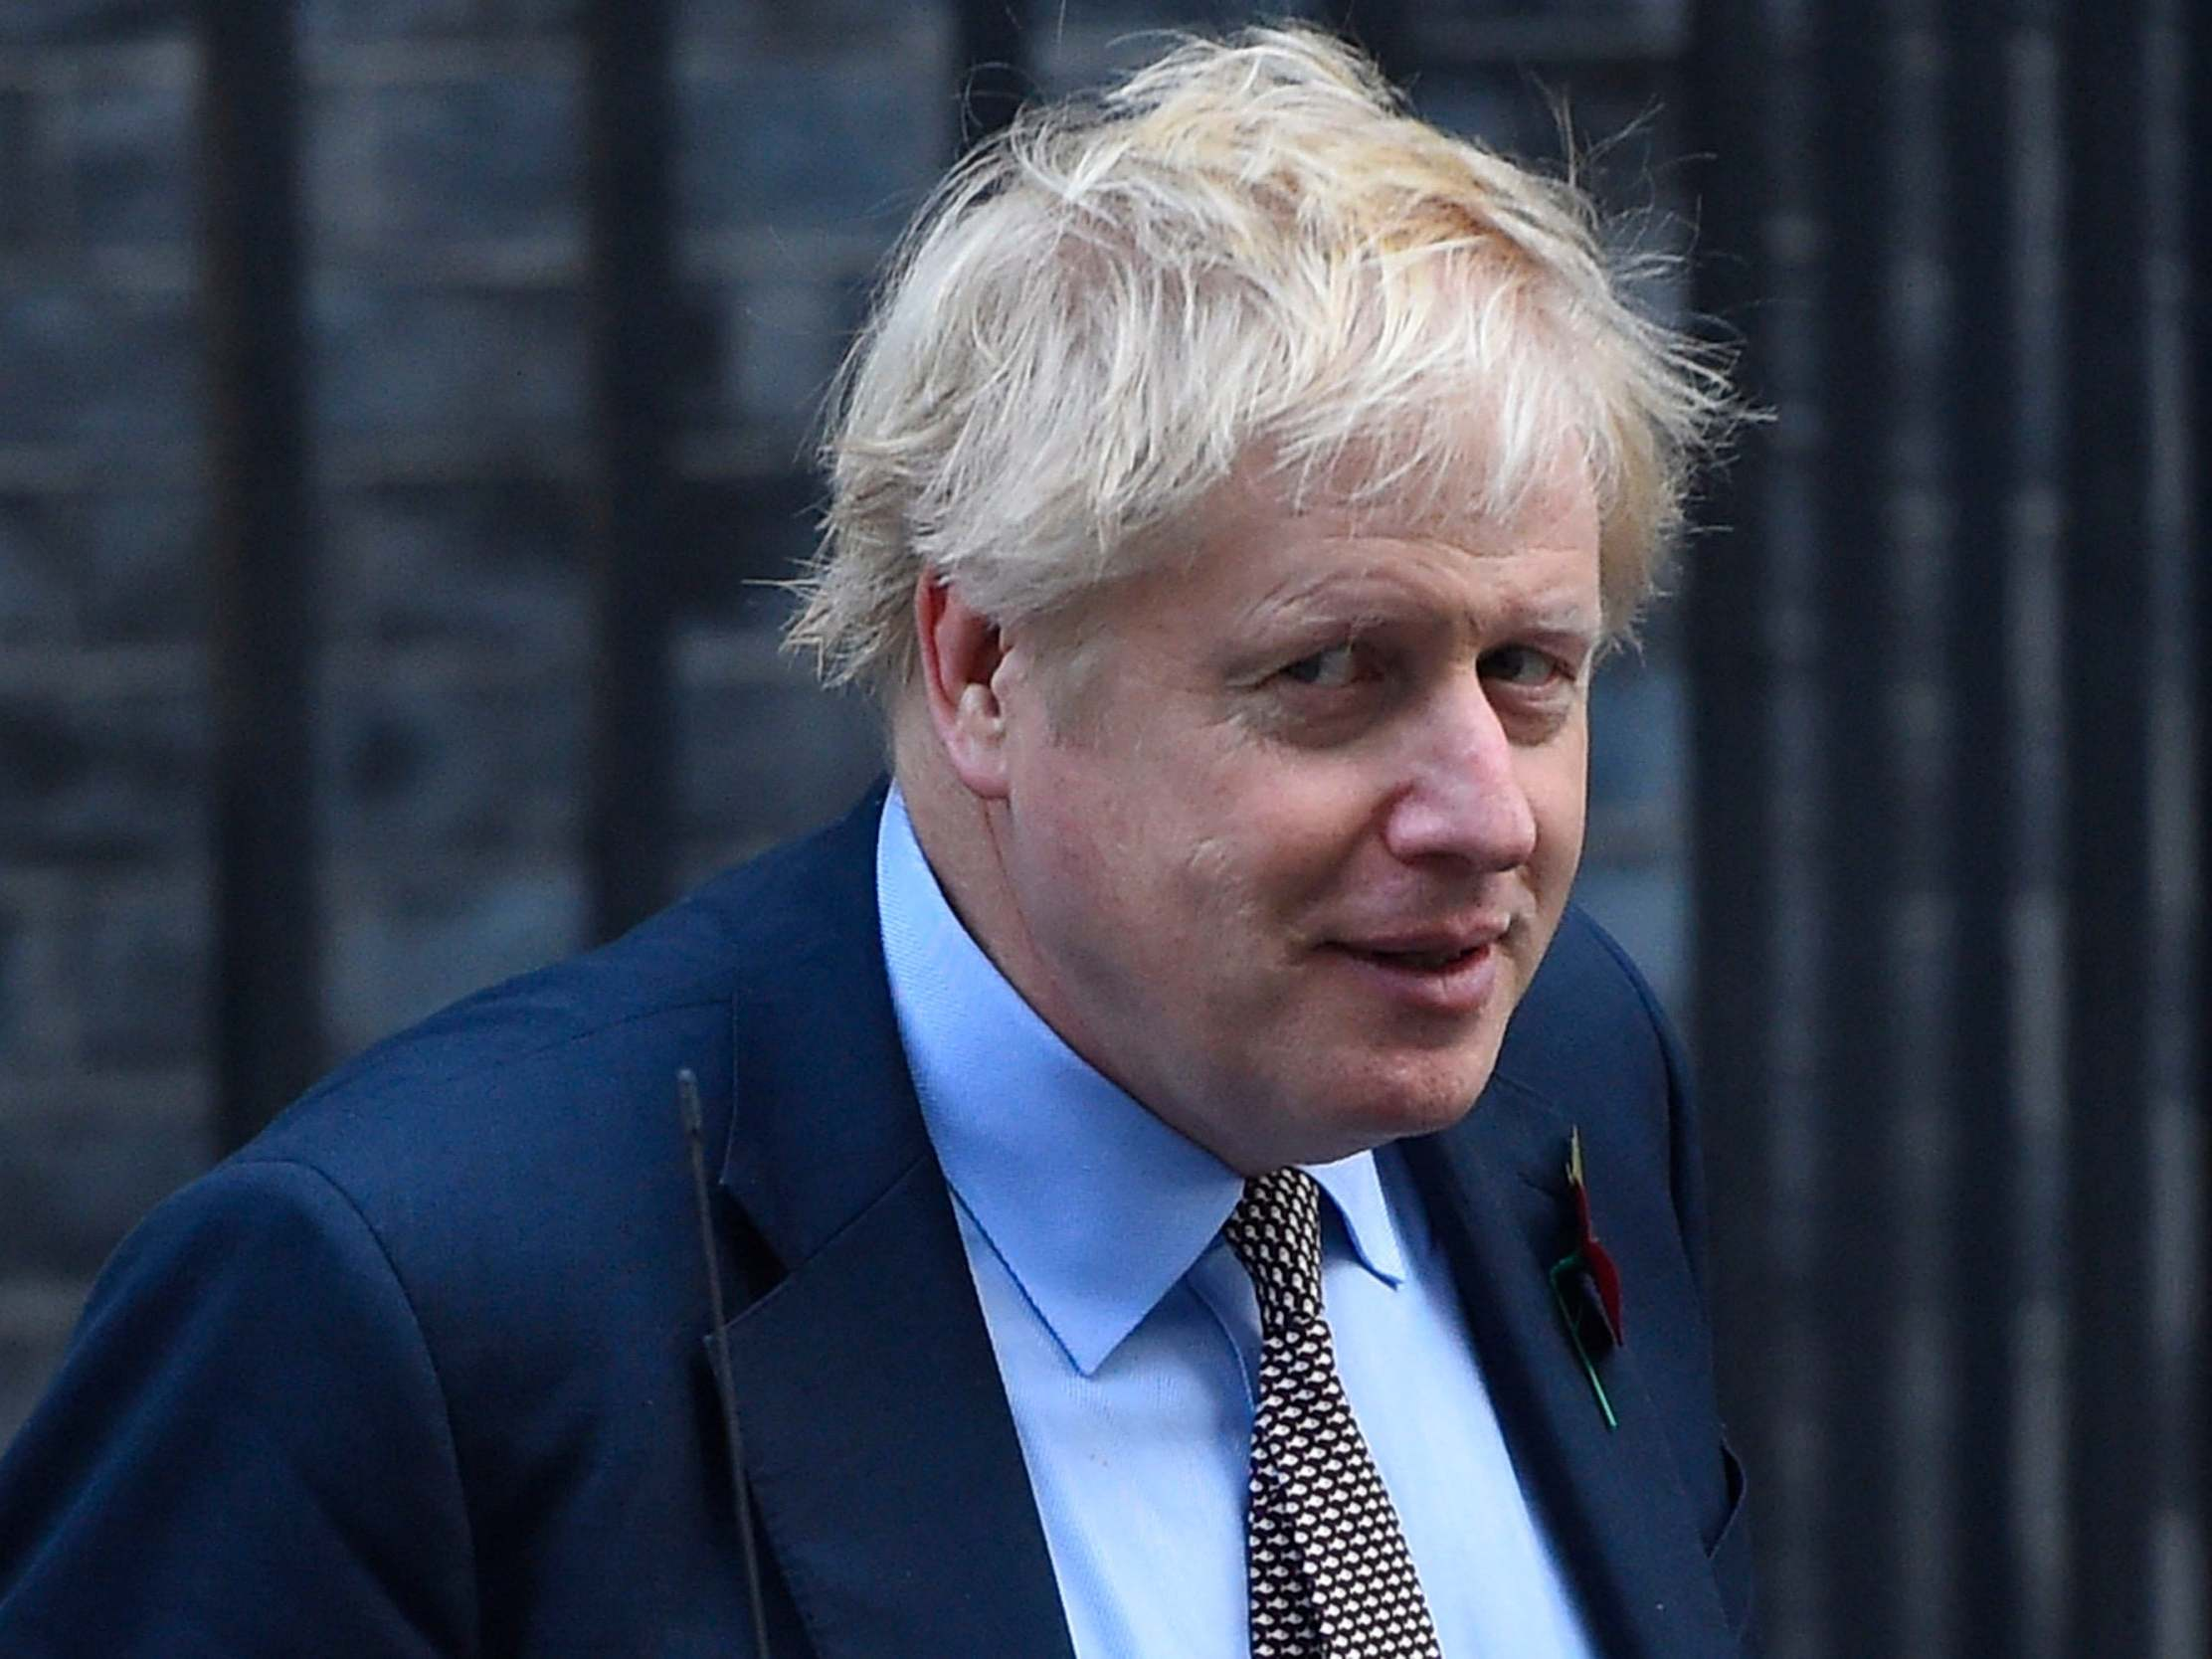 Boris Johnson news – live: Lib Dems quash candidate's attempt to form Remain pact, as former Tory minister backs second Brexit referendum